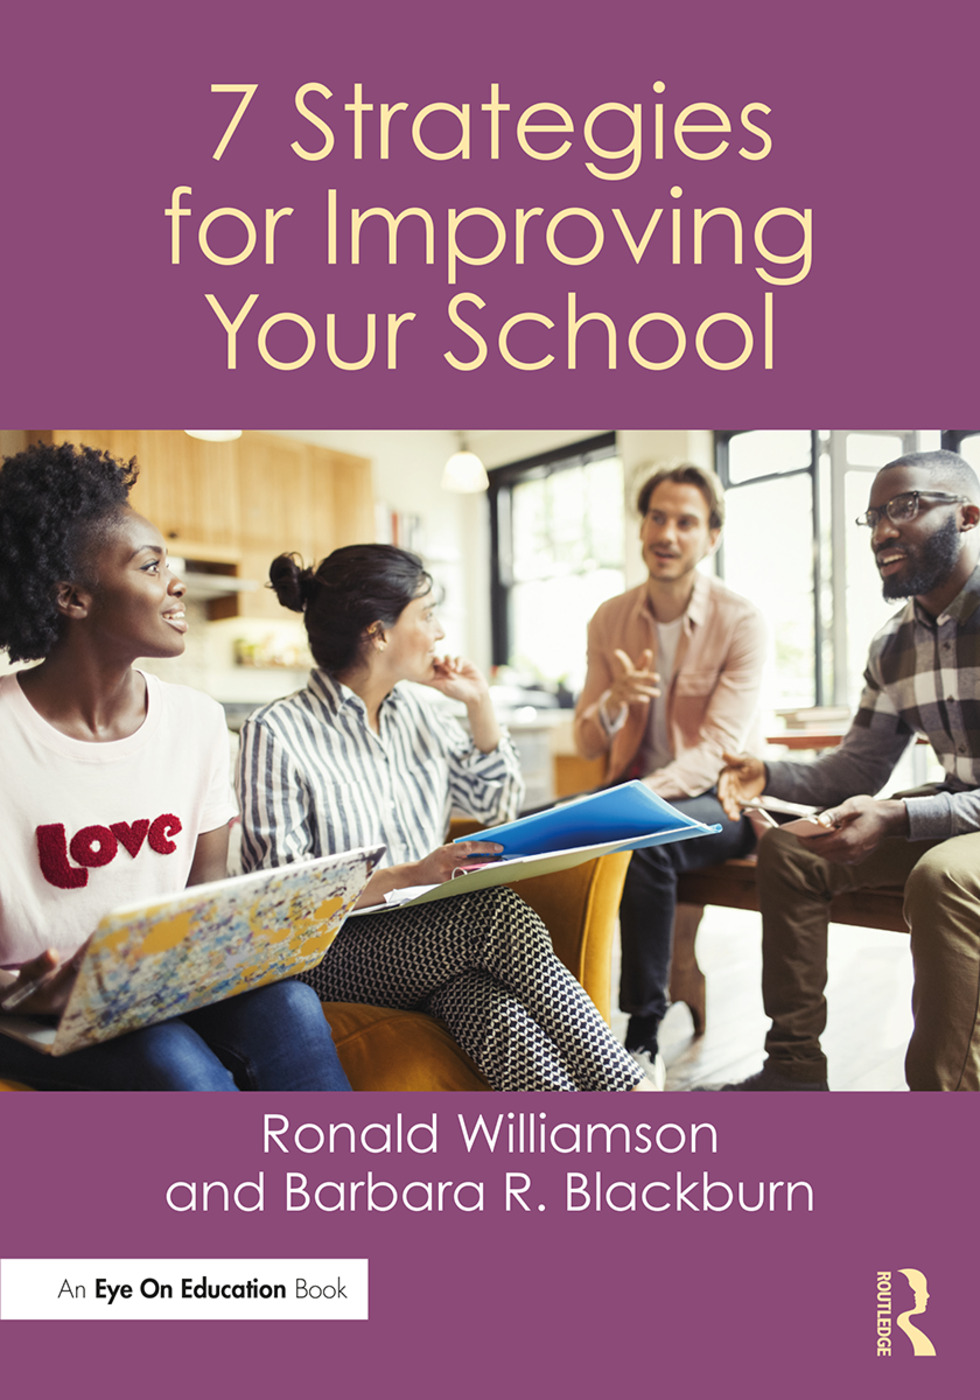 7 Strategies for Improving Your School book cover